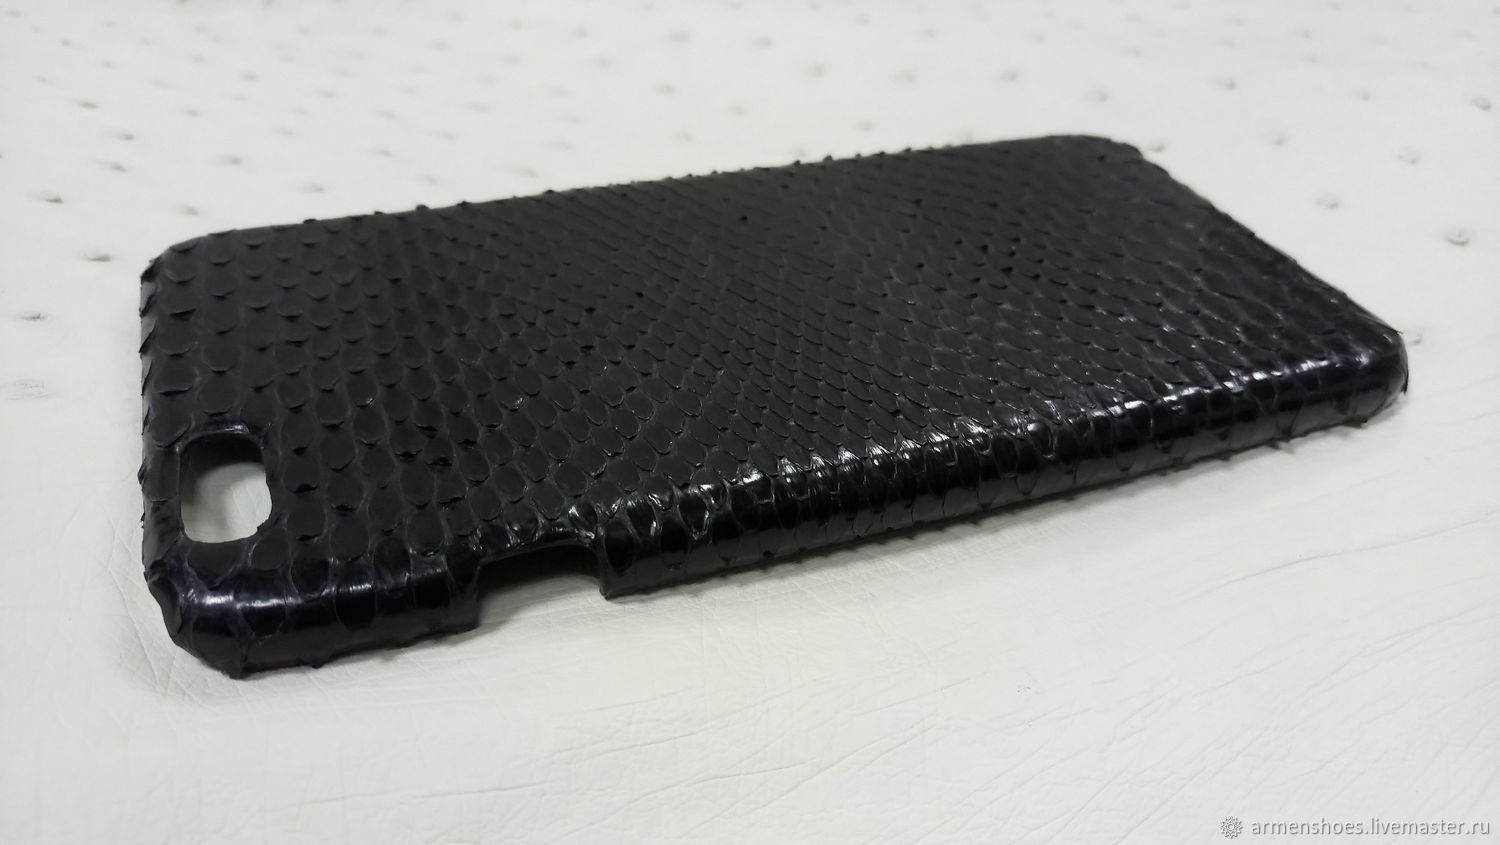 Python skin pad, for Apple iPhone 6Plus, Case, Tosno,  Фото №1